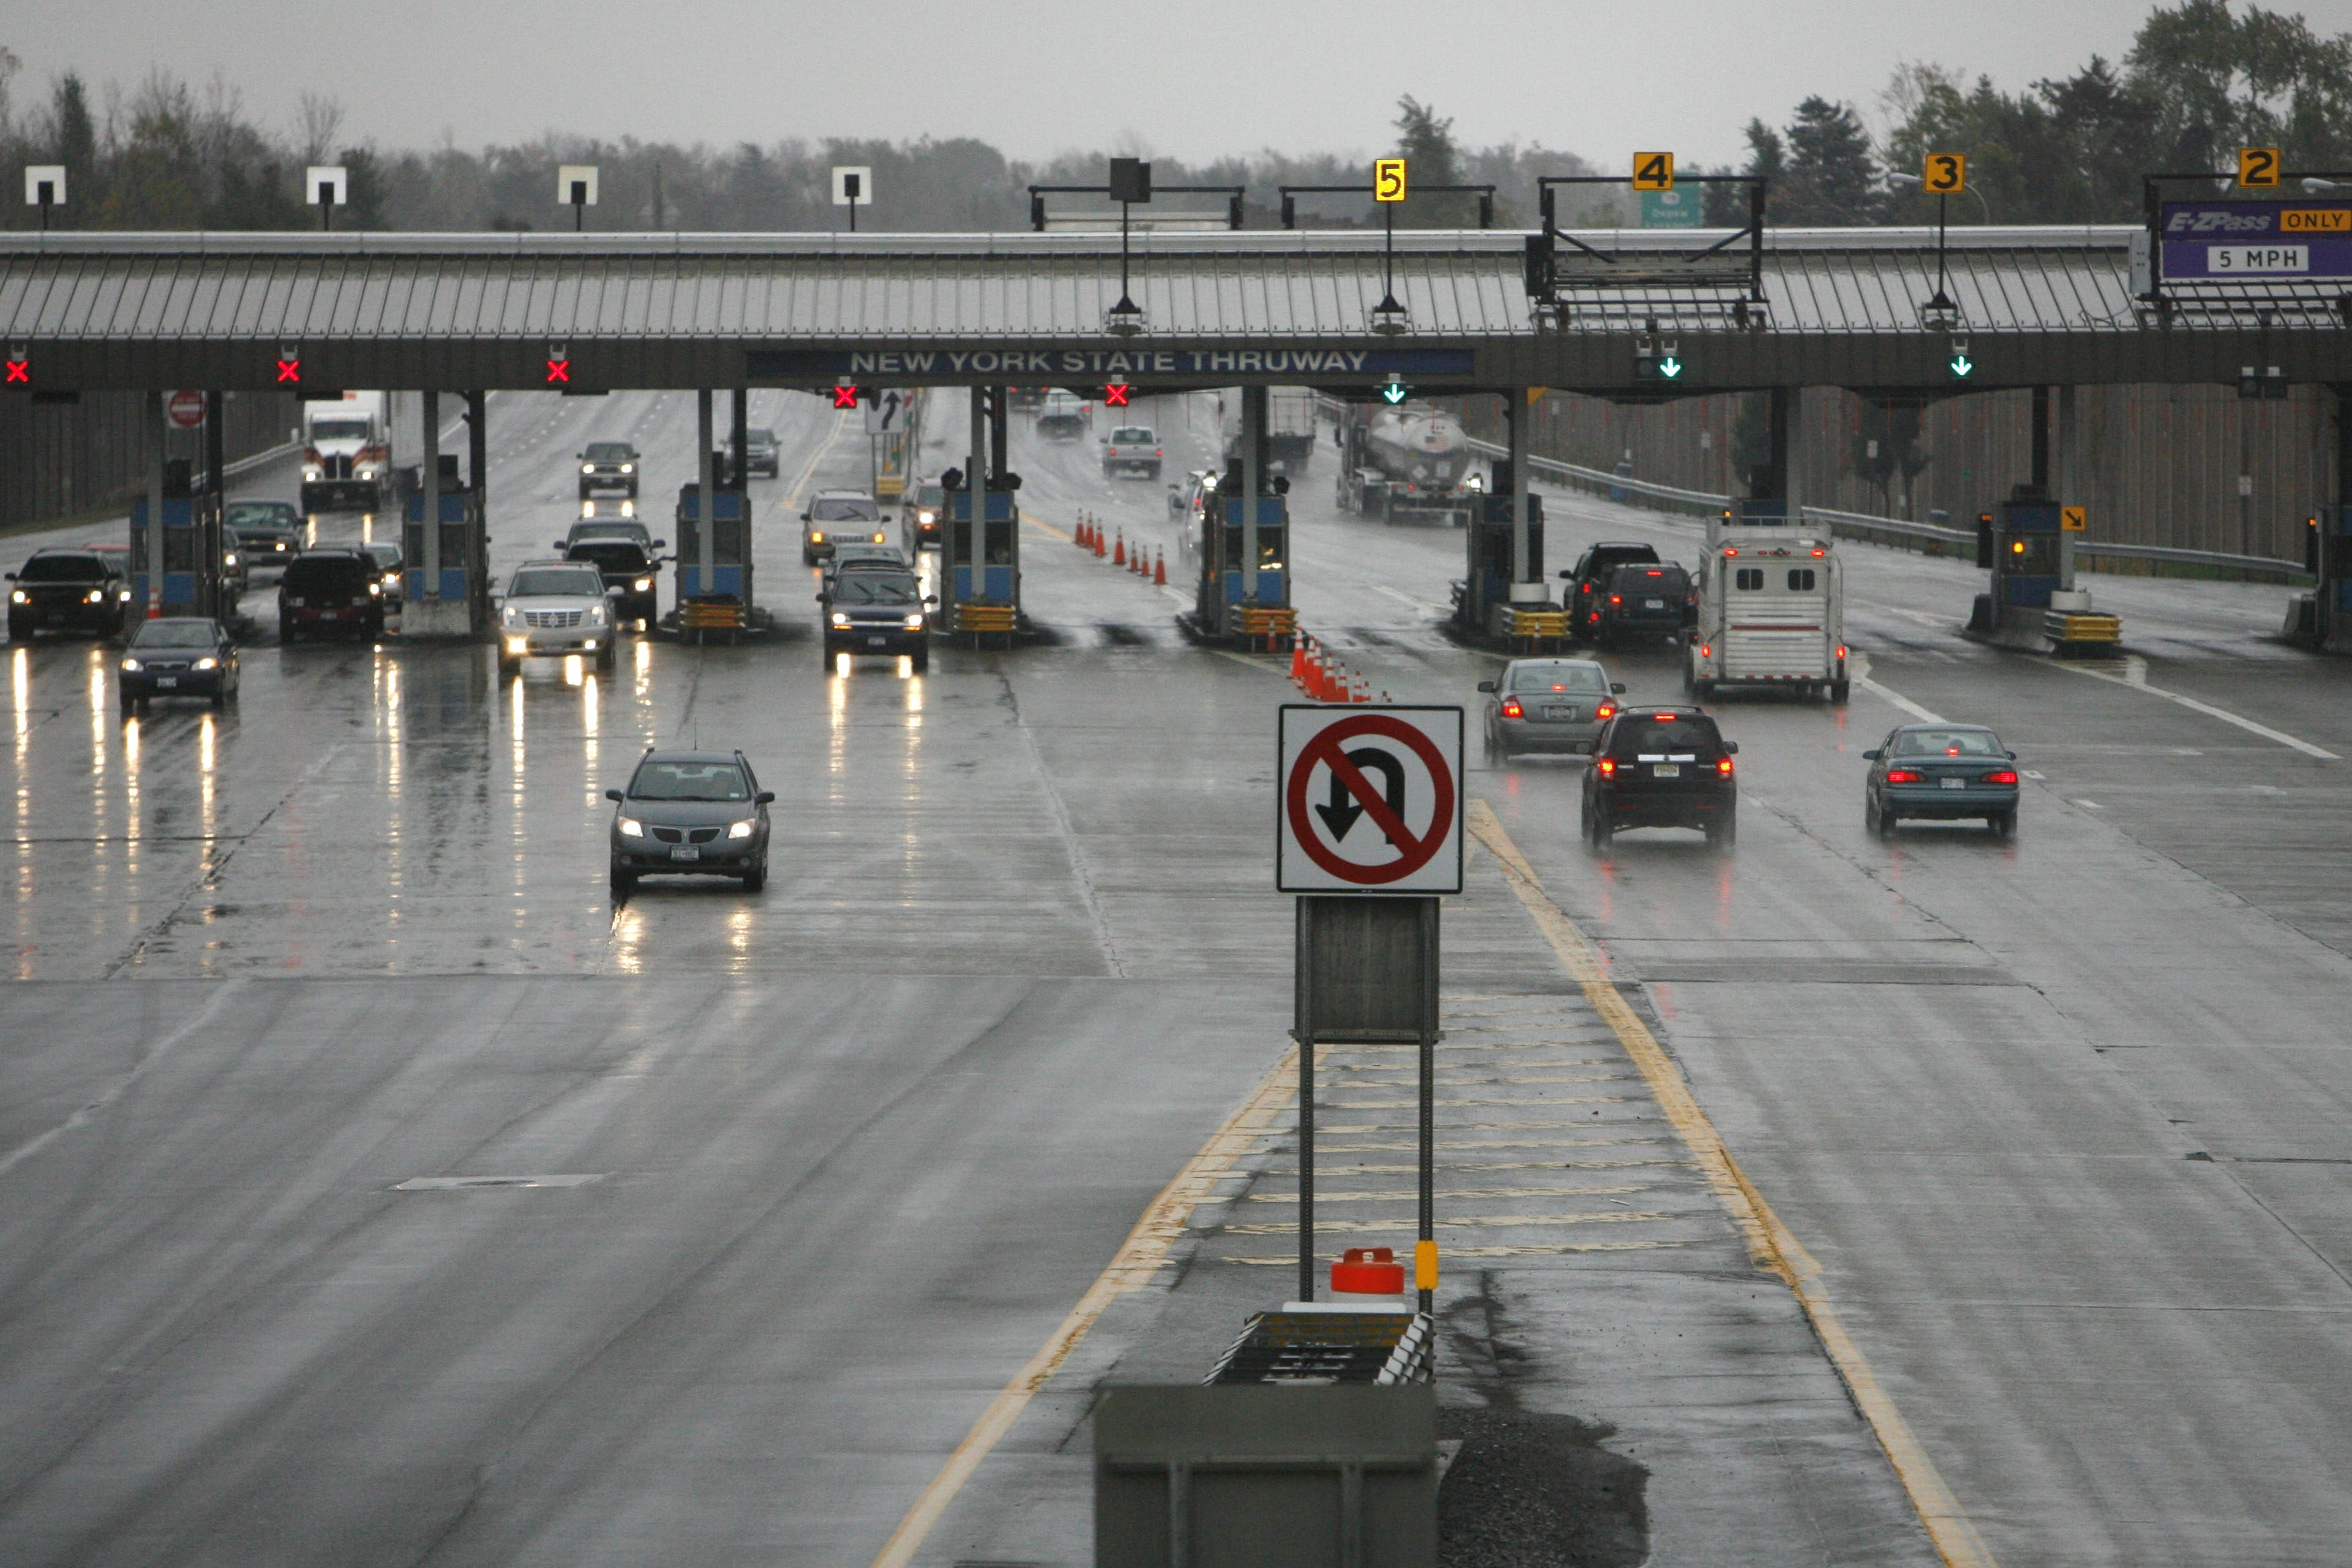 """New York State Thruway officials acknowledged Wednesday that """"toll adjustments"""" are likely coming."""